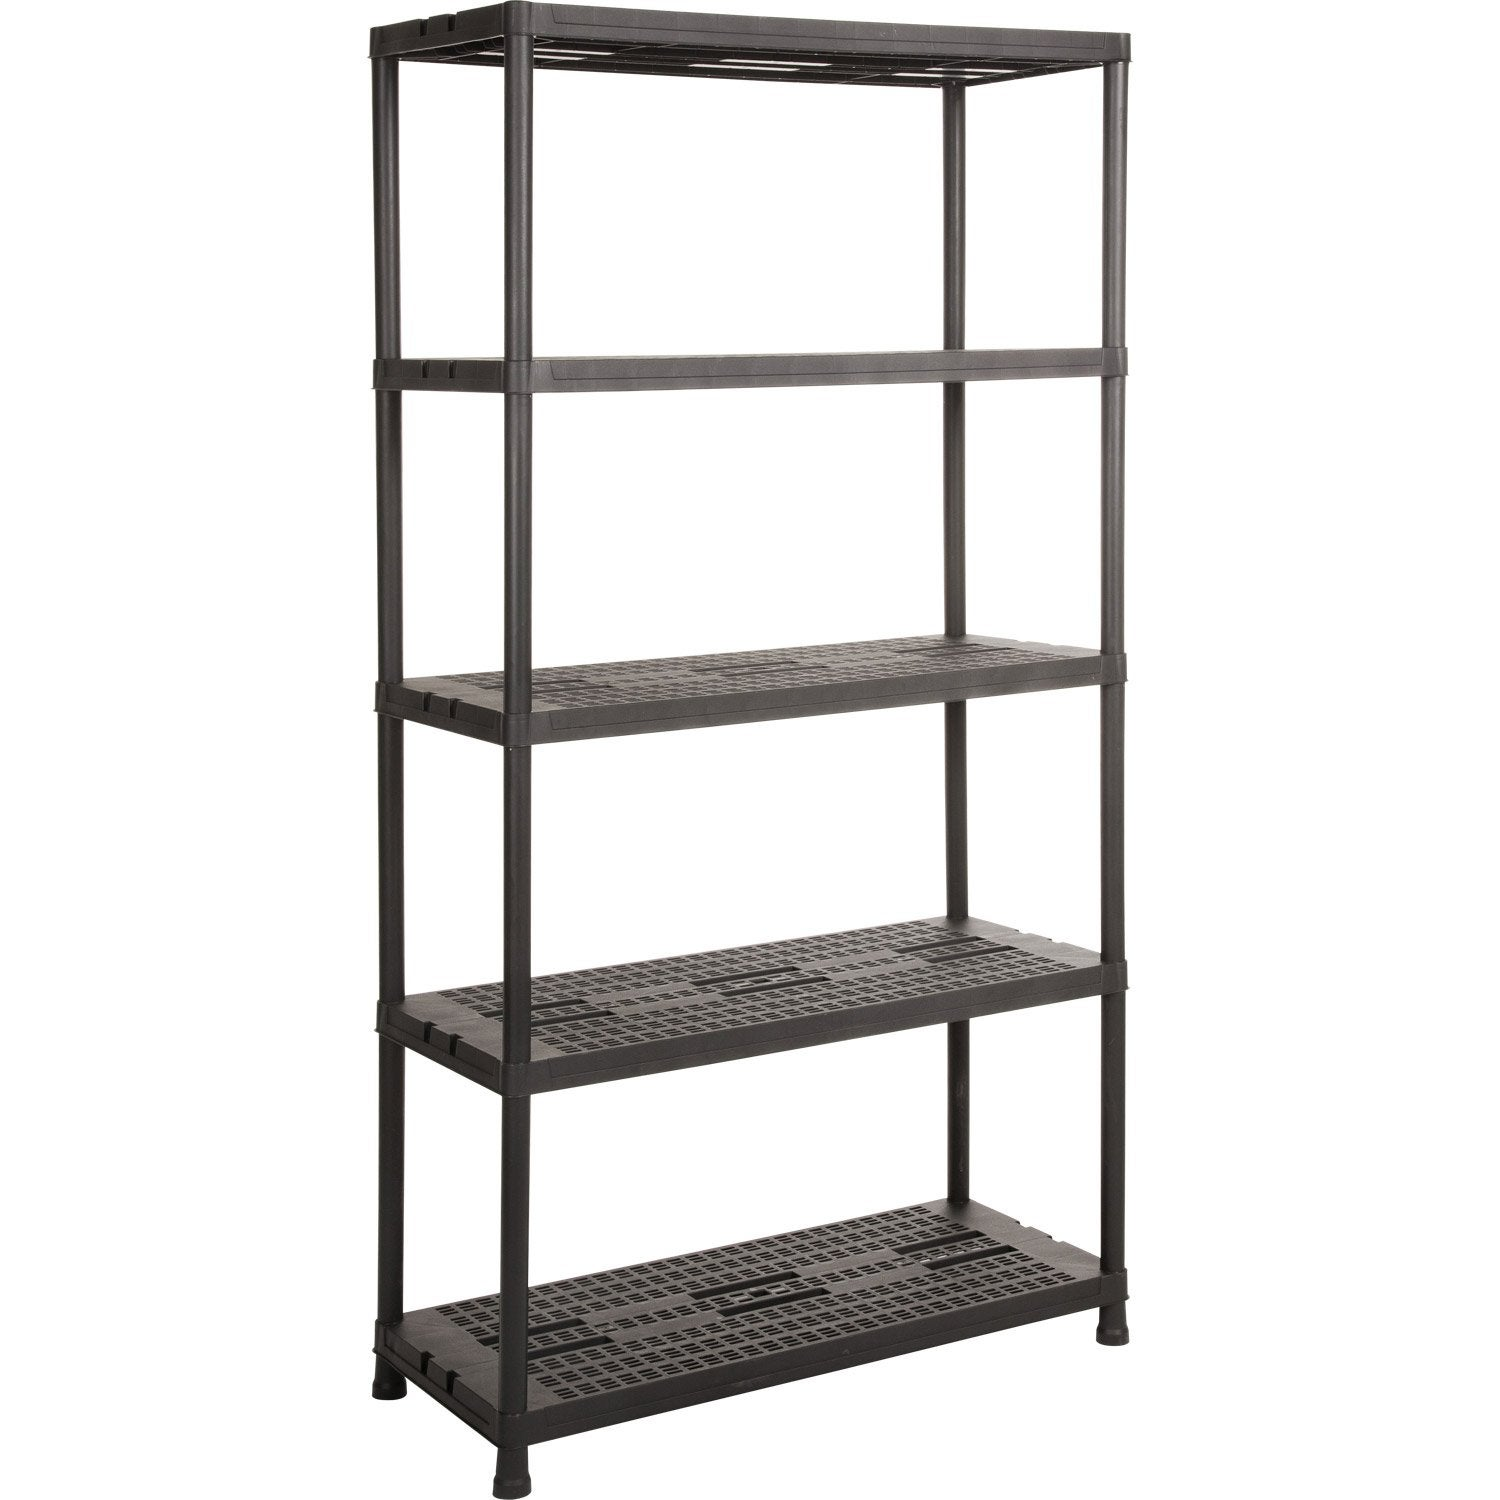 Etag re r sine 5 tablettes noir l90xh180xp40 cm leroy merlin - Leroy merlin etagere metal ...